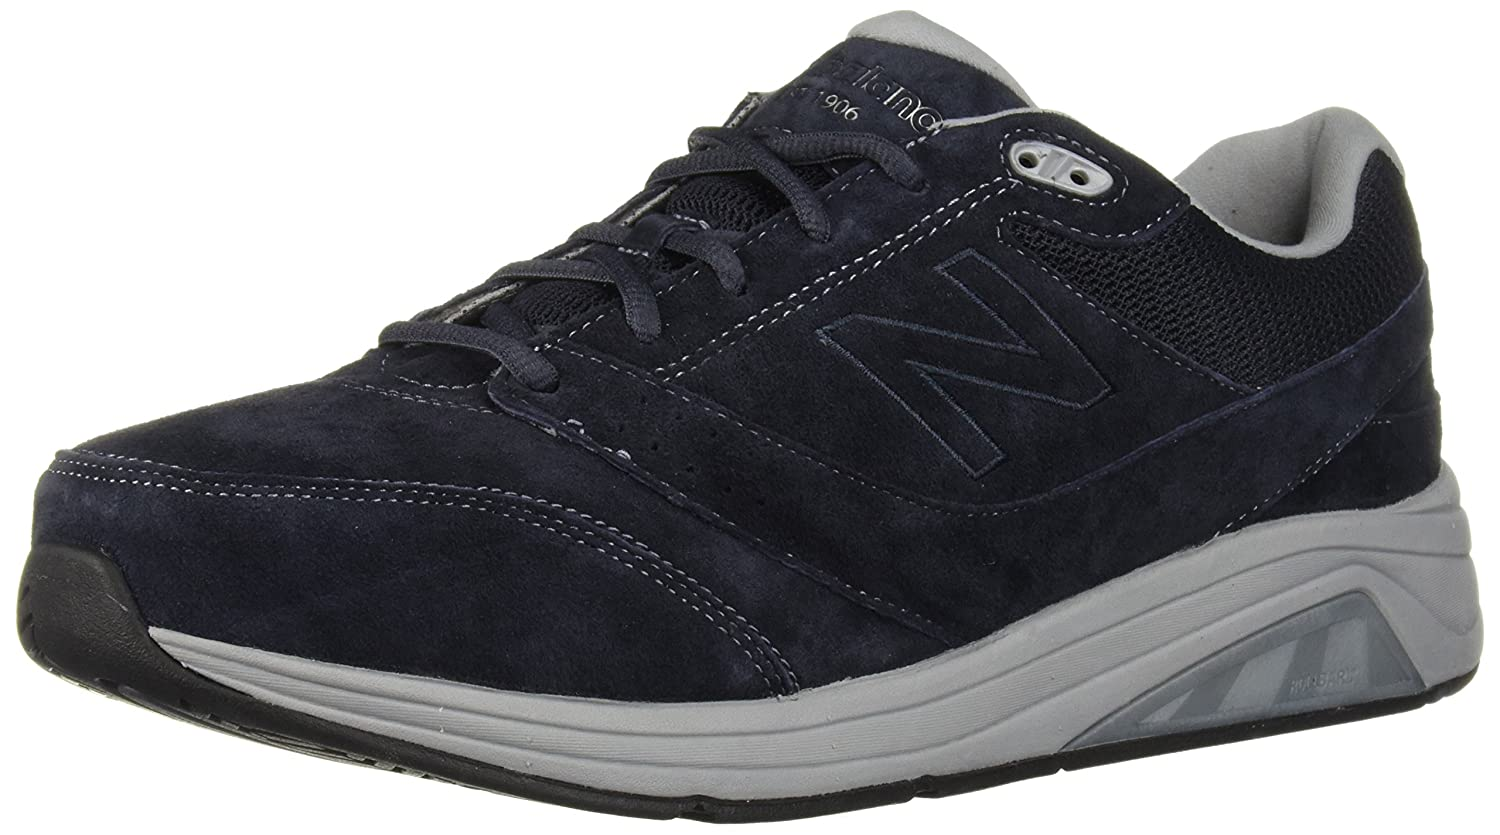 New Balance Women's Womens 928v3 Walking Shoe Walking Shoe B01N66IDHX 10.5 D US|Navy/Grey